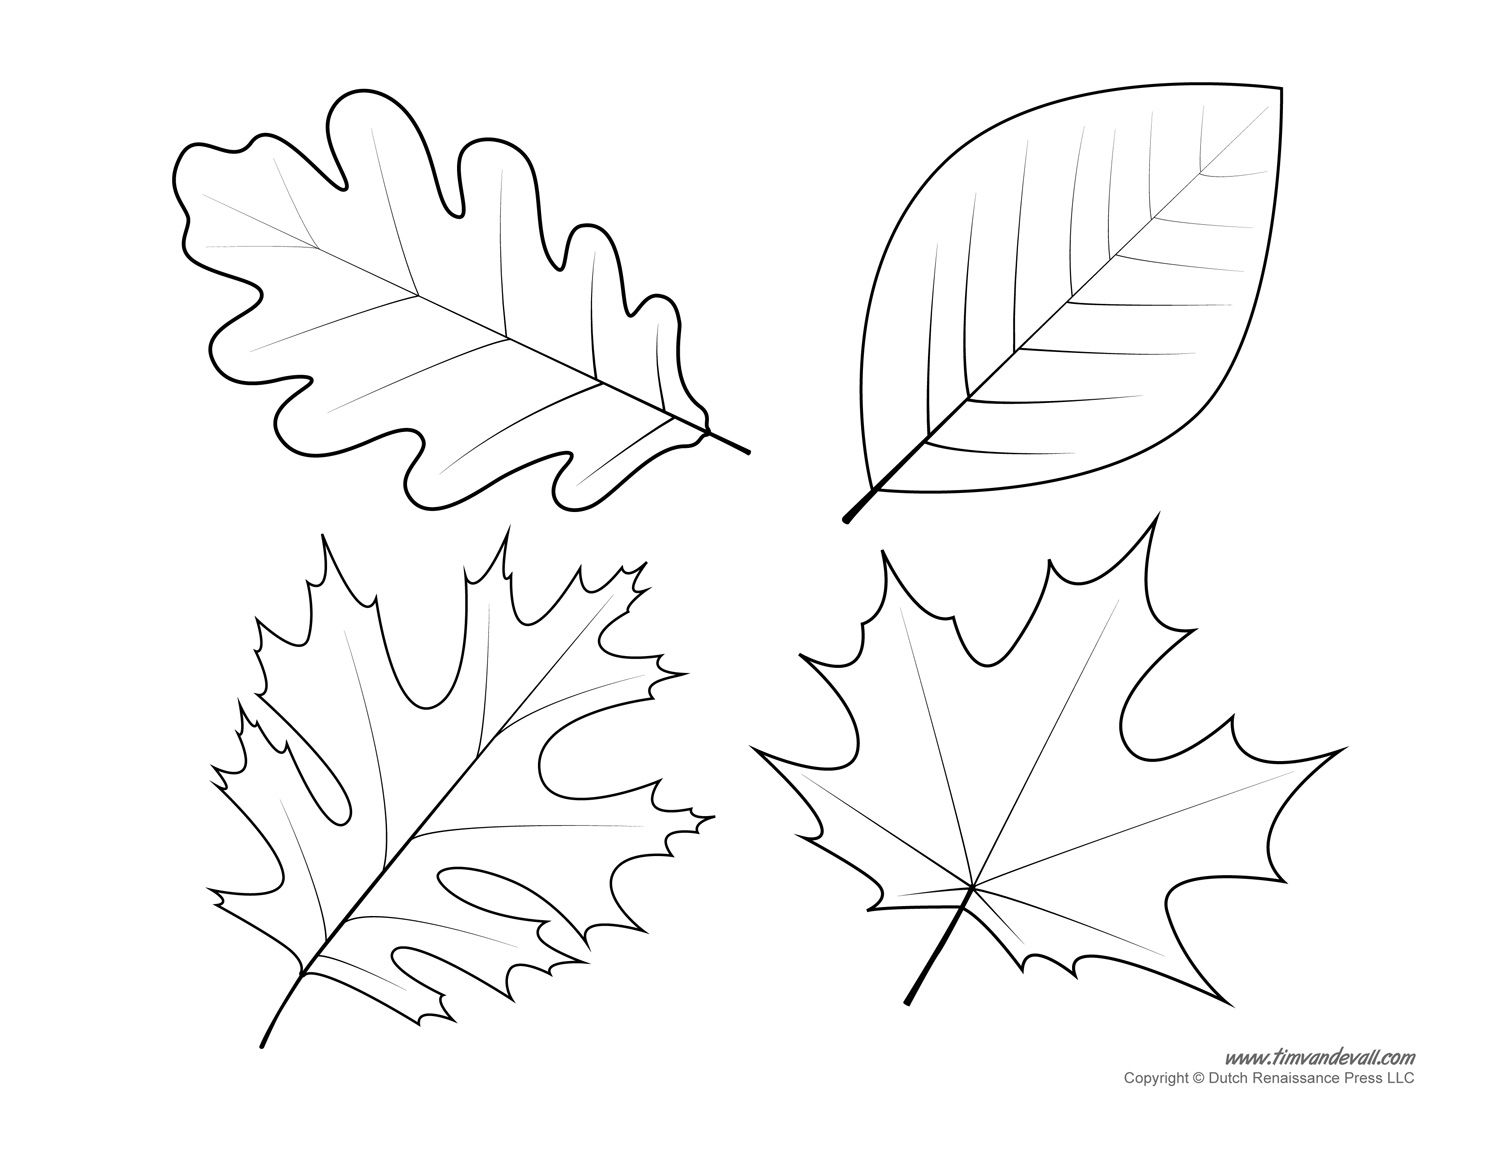 Traceable Leaf Patterns